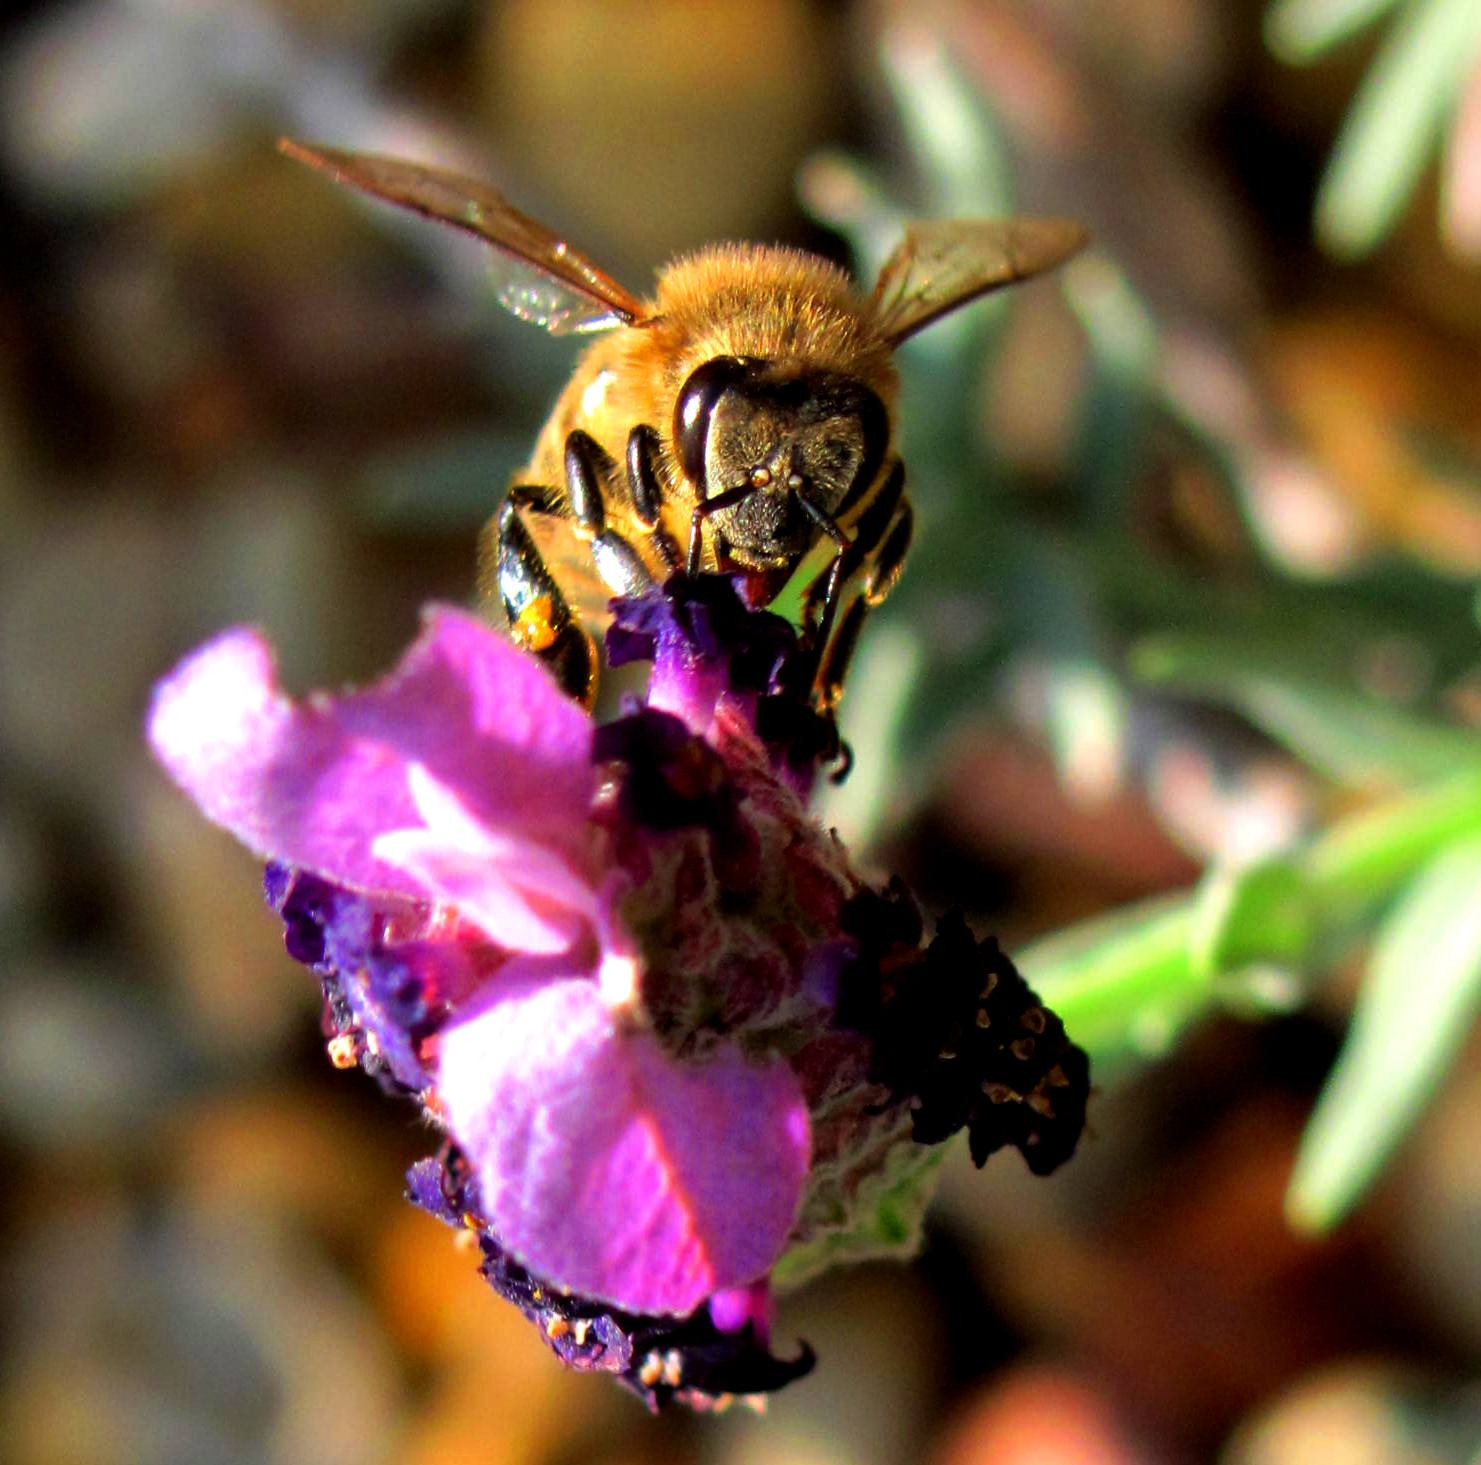 Bees and pollination of Biofuels